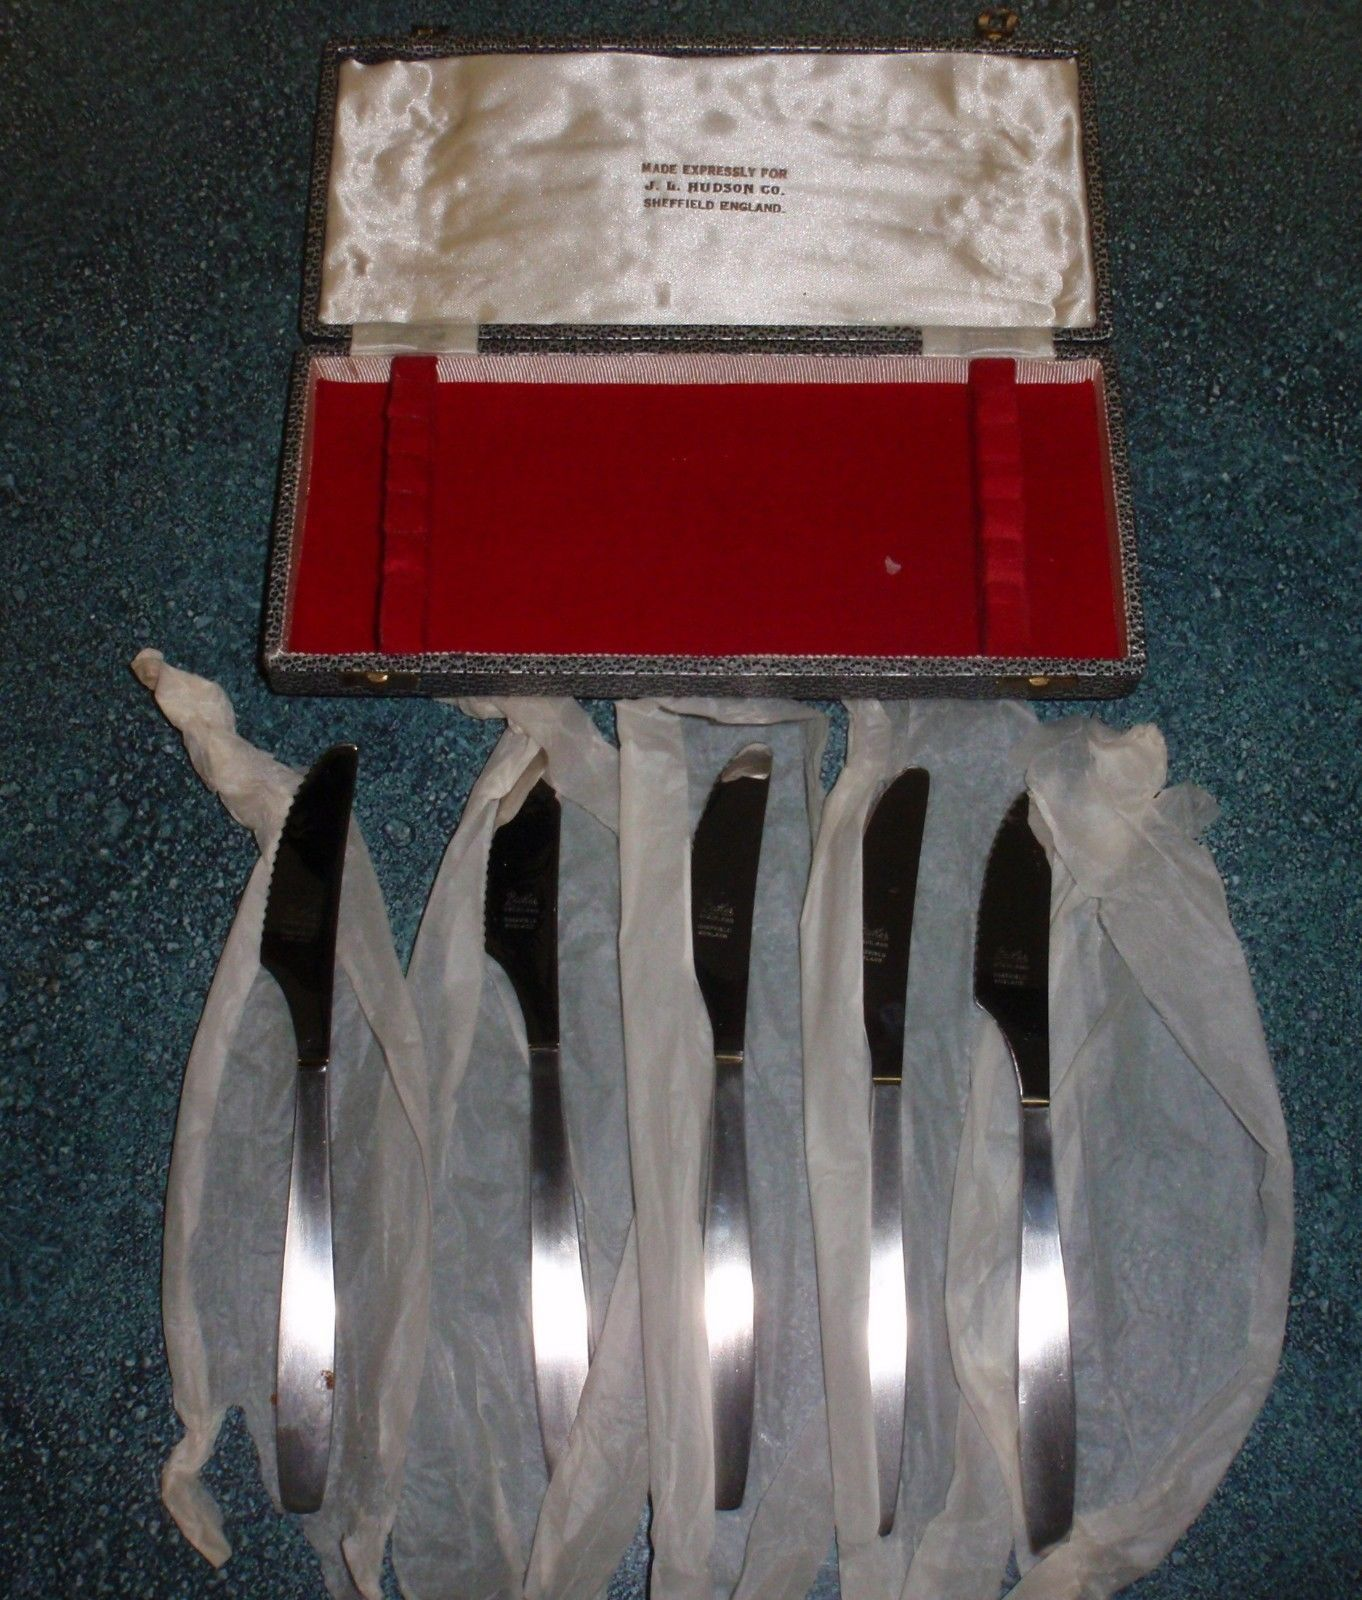 Primary image for Set of 5 Butlers Sheffield England Stainless Steel Knives With Case JL Hudson